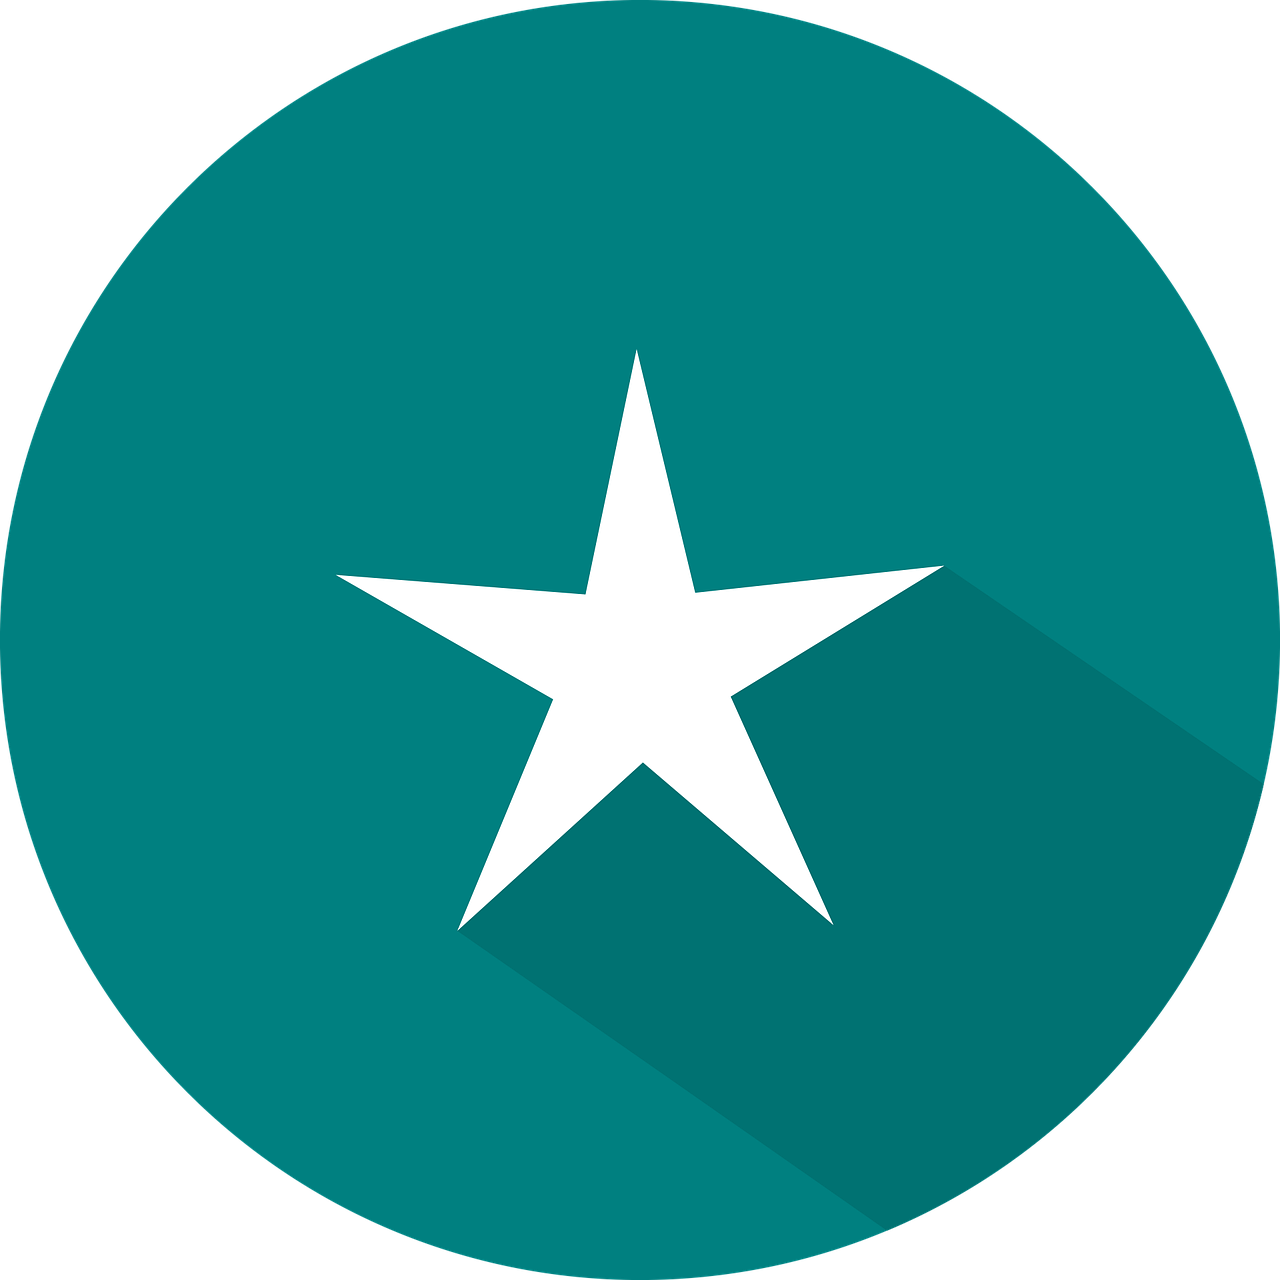 star-987445_1280.png